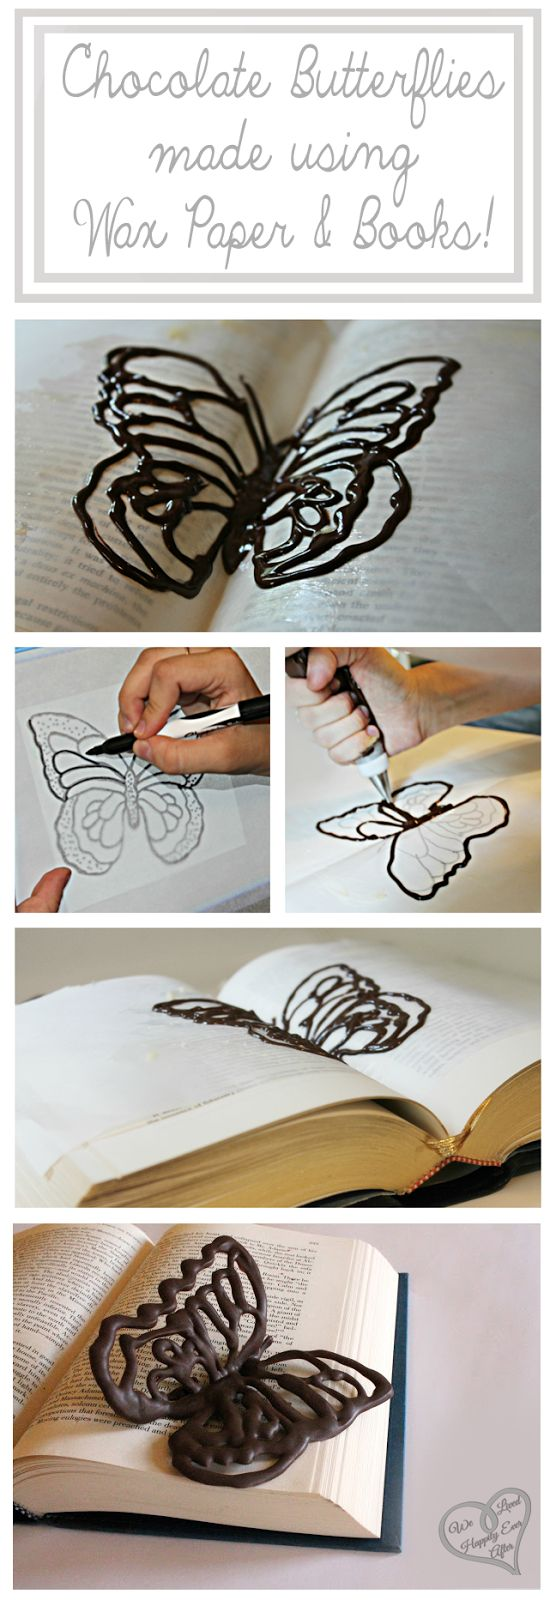 This is so smart! Use an open book covered in wax paper to create a realistic wingspan for chocolate butterflies!